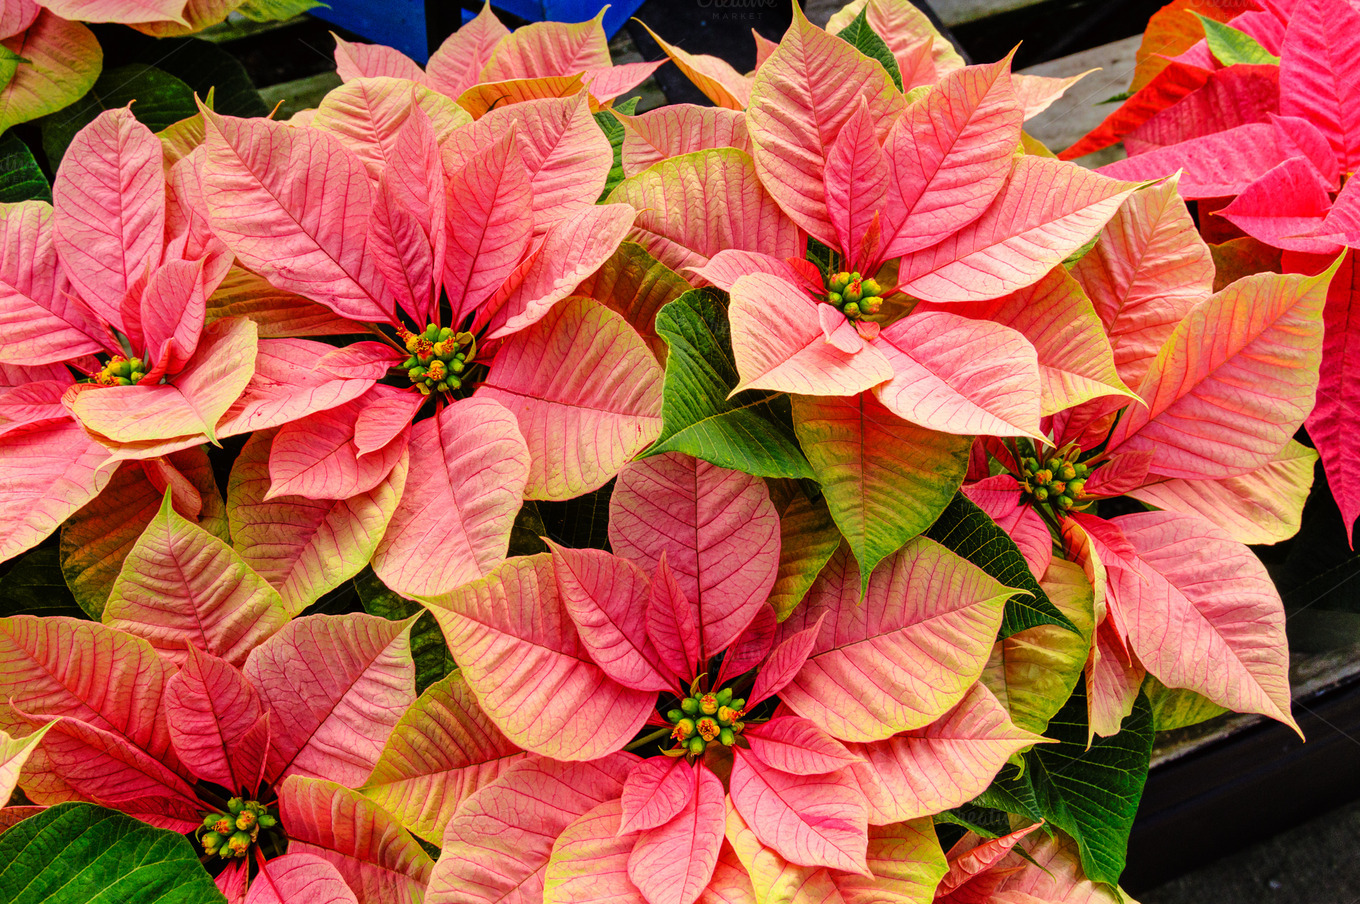 Pink poinsettia holiday flowers photos on